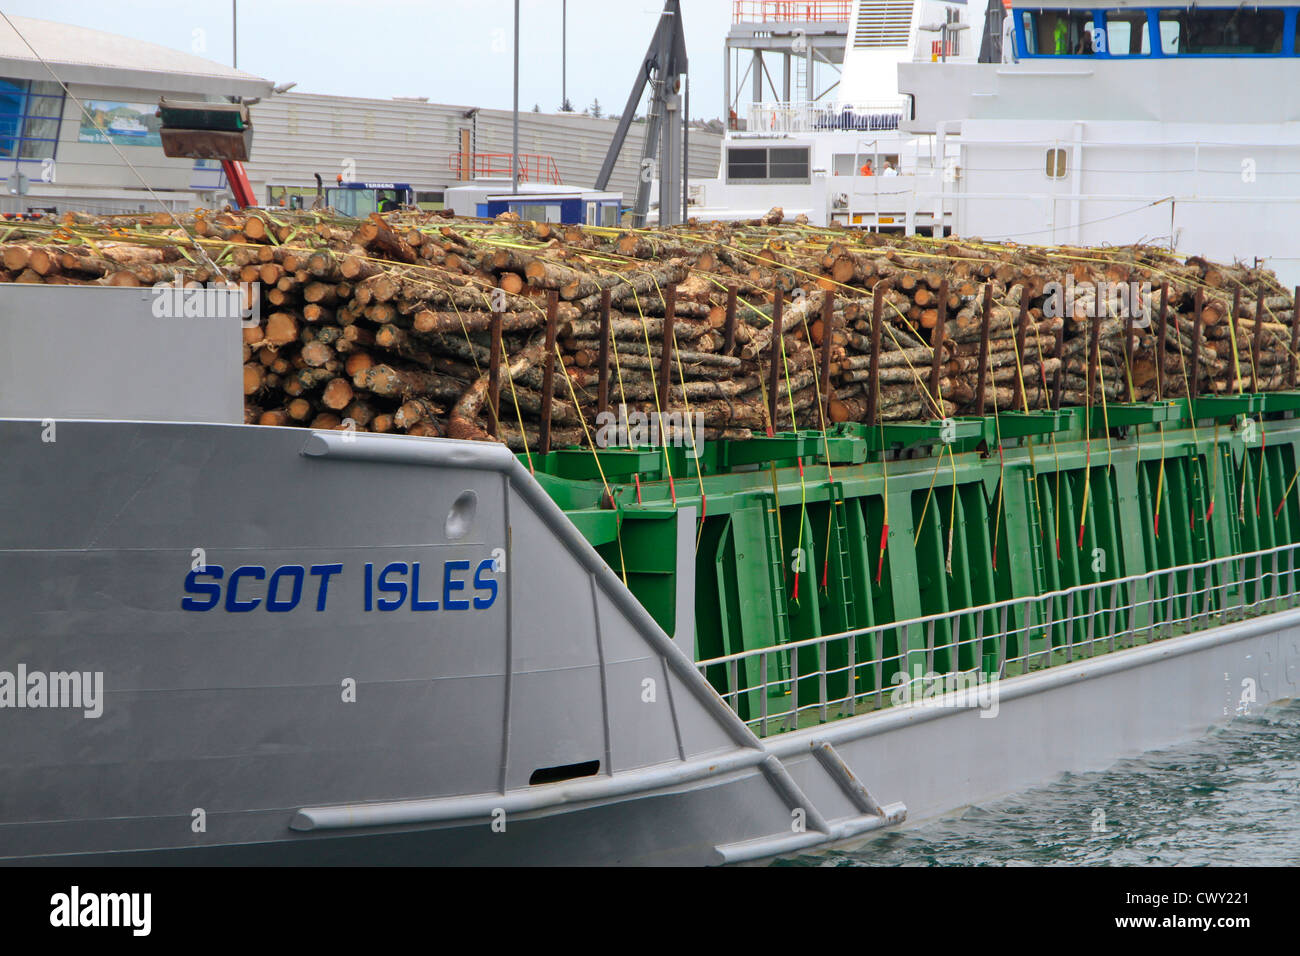 Transporting timber logs by ship - Stock Image